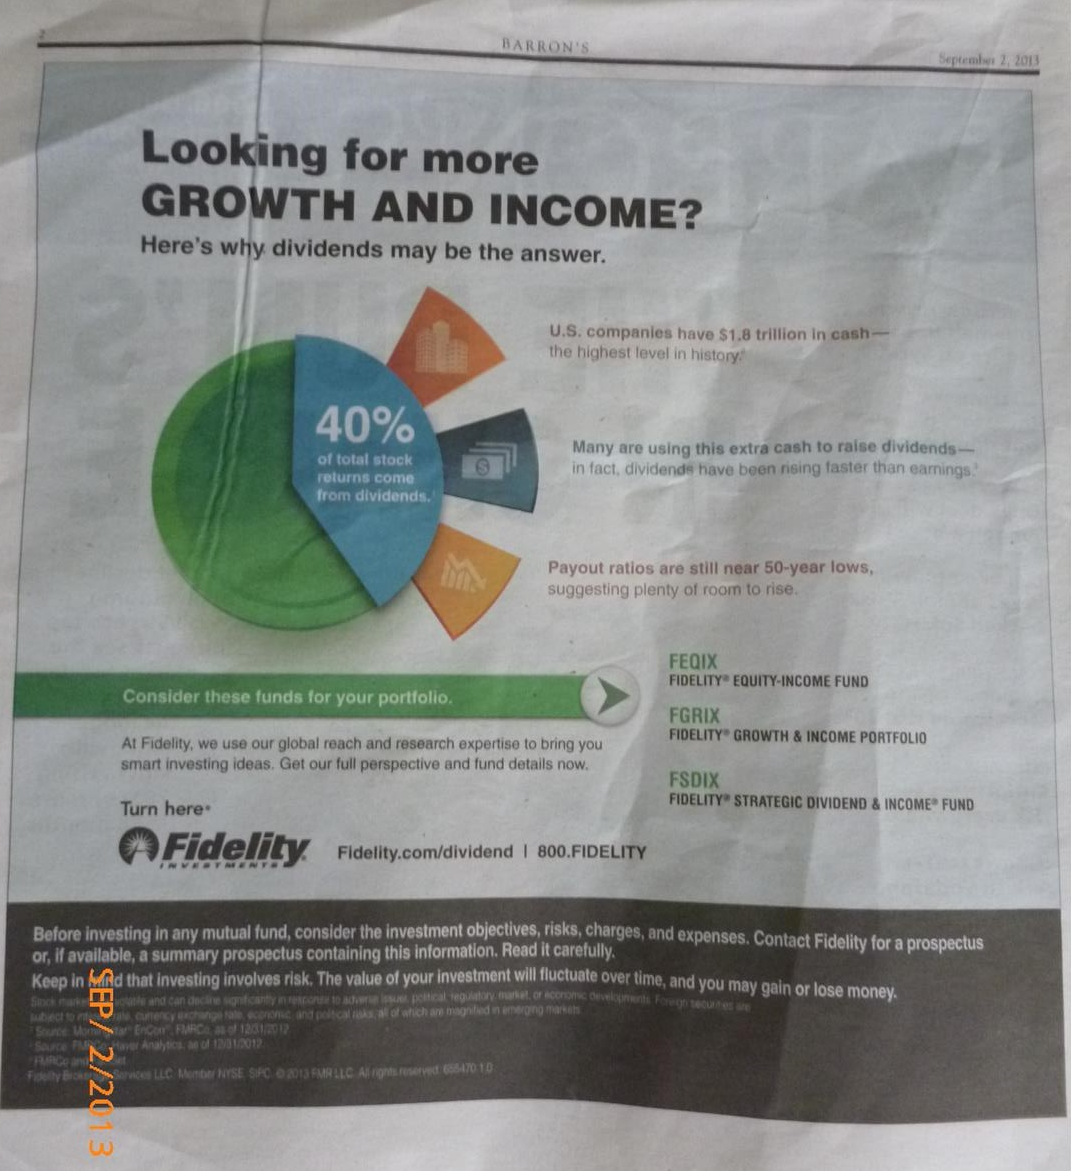 Fidelity Ads Of Mutual Fund Looking For More Growth And